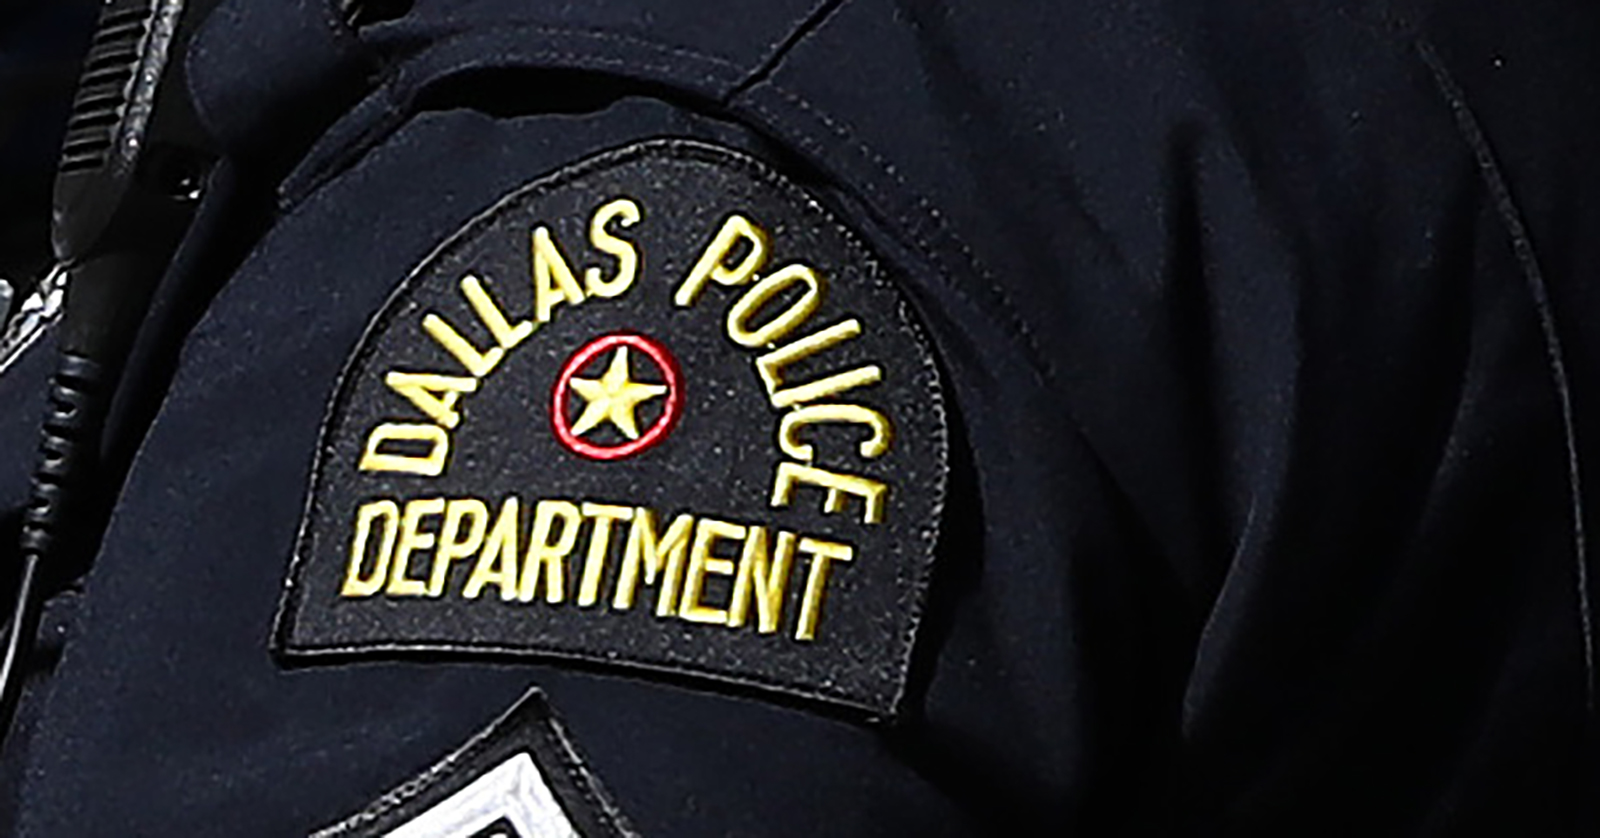 Dallas police officer faces two capital murder charges